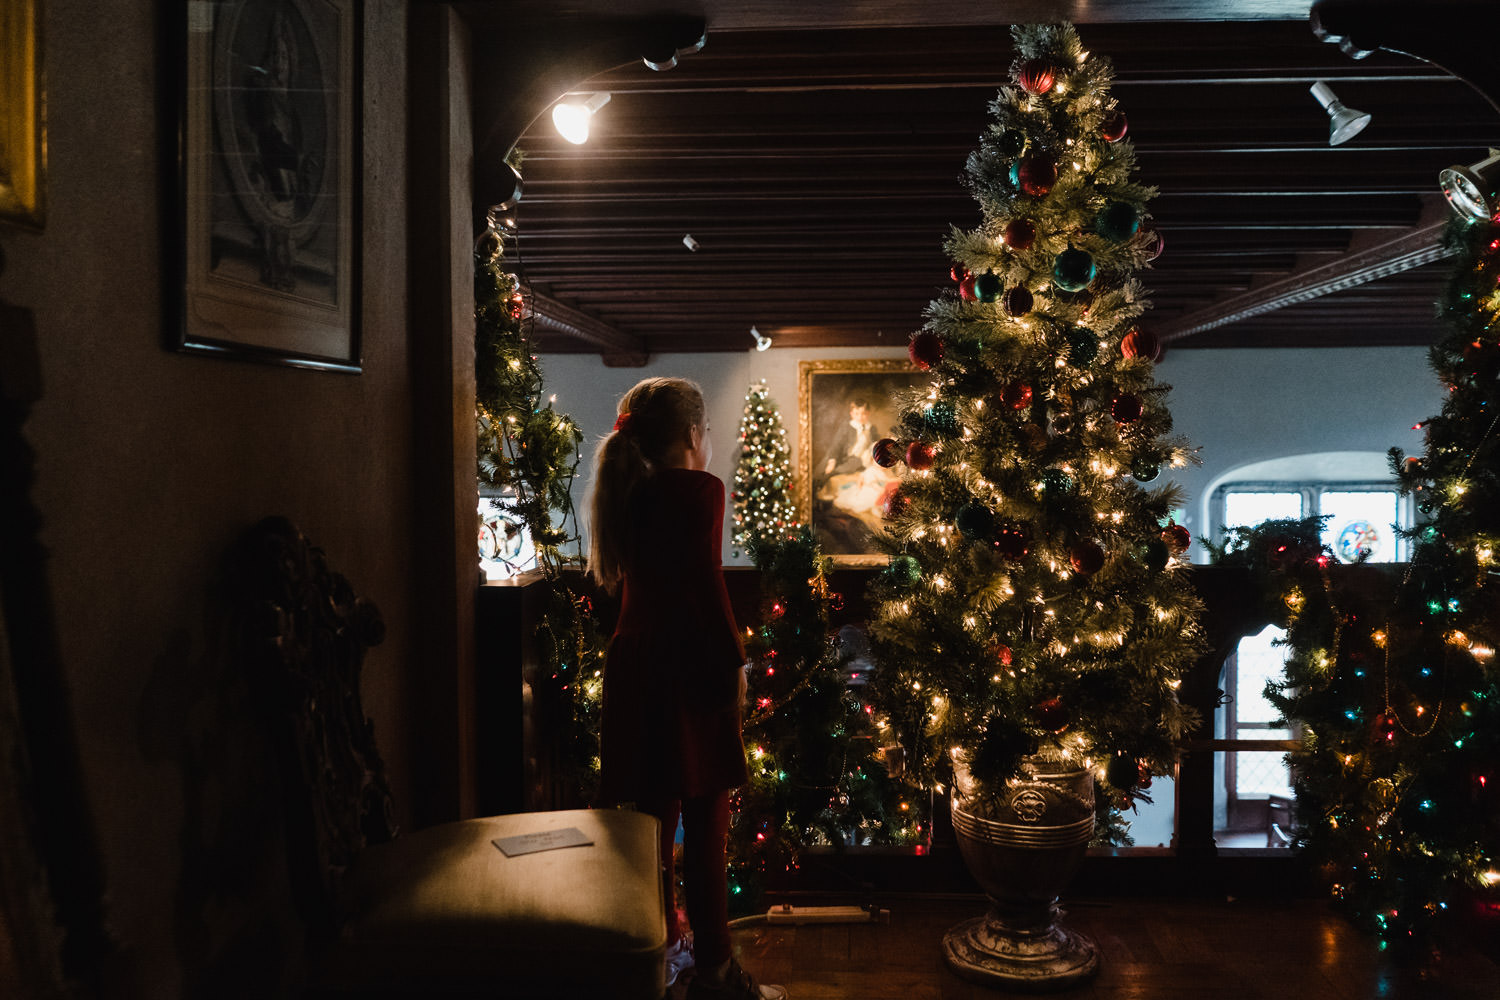 A little girl stands next to a Christmas tree at Coe House.